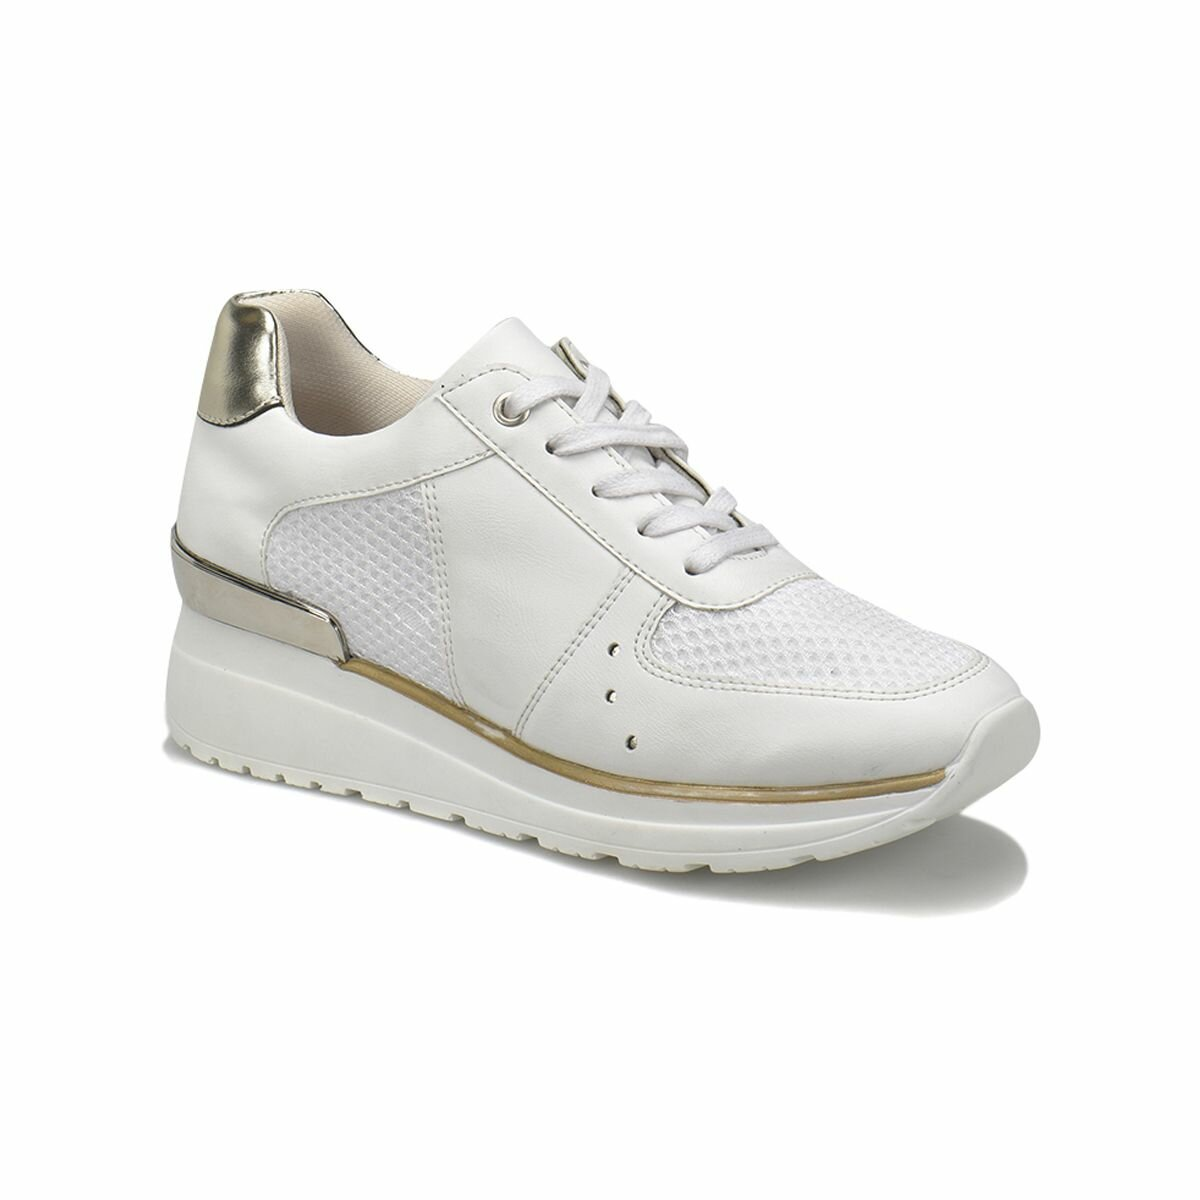 FLO 18S-402 White Women 'S Sports Shoes BUTIGO